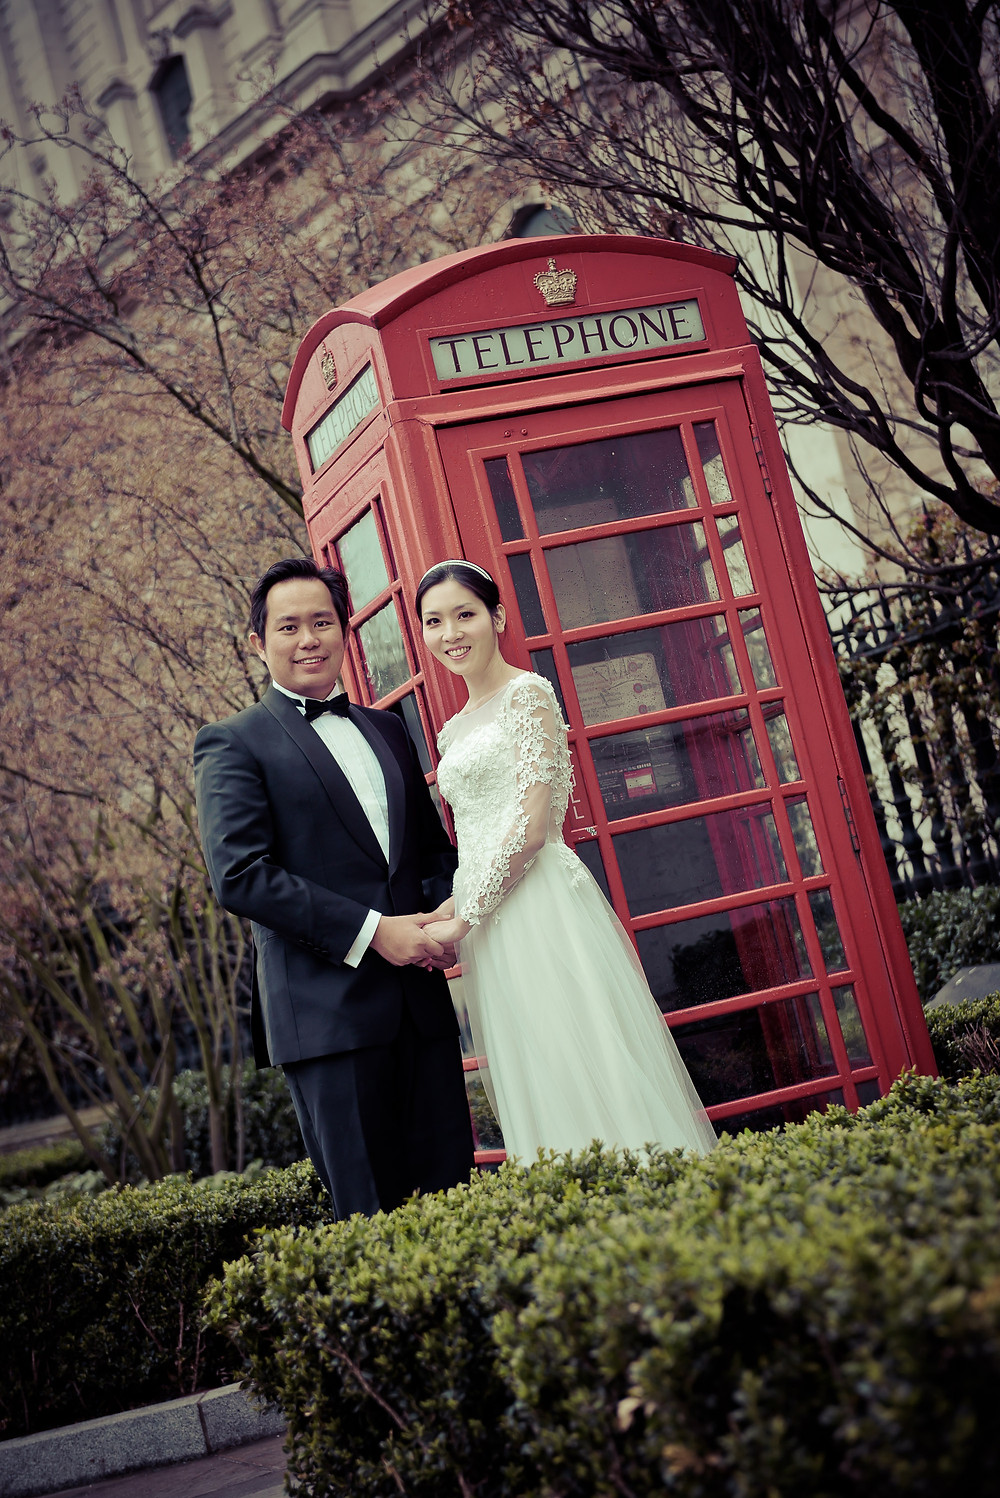 telephone booth couple photo london